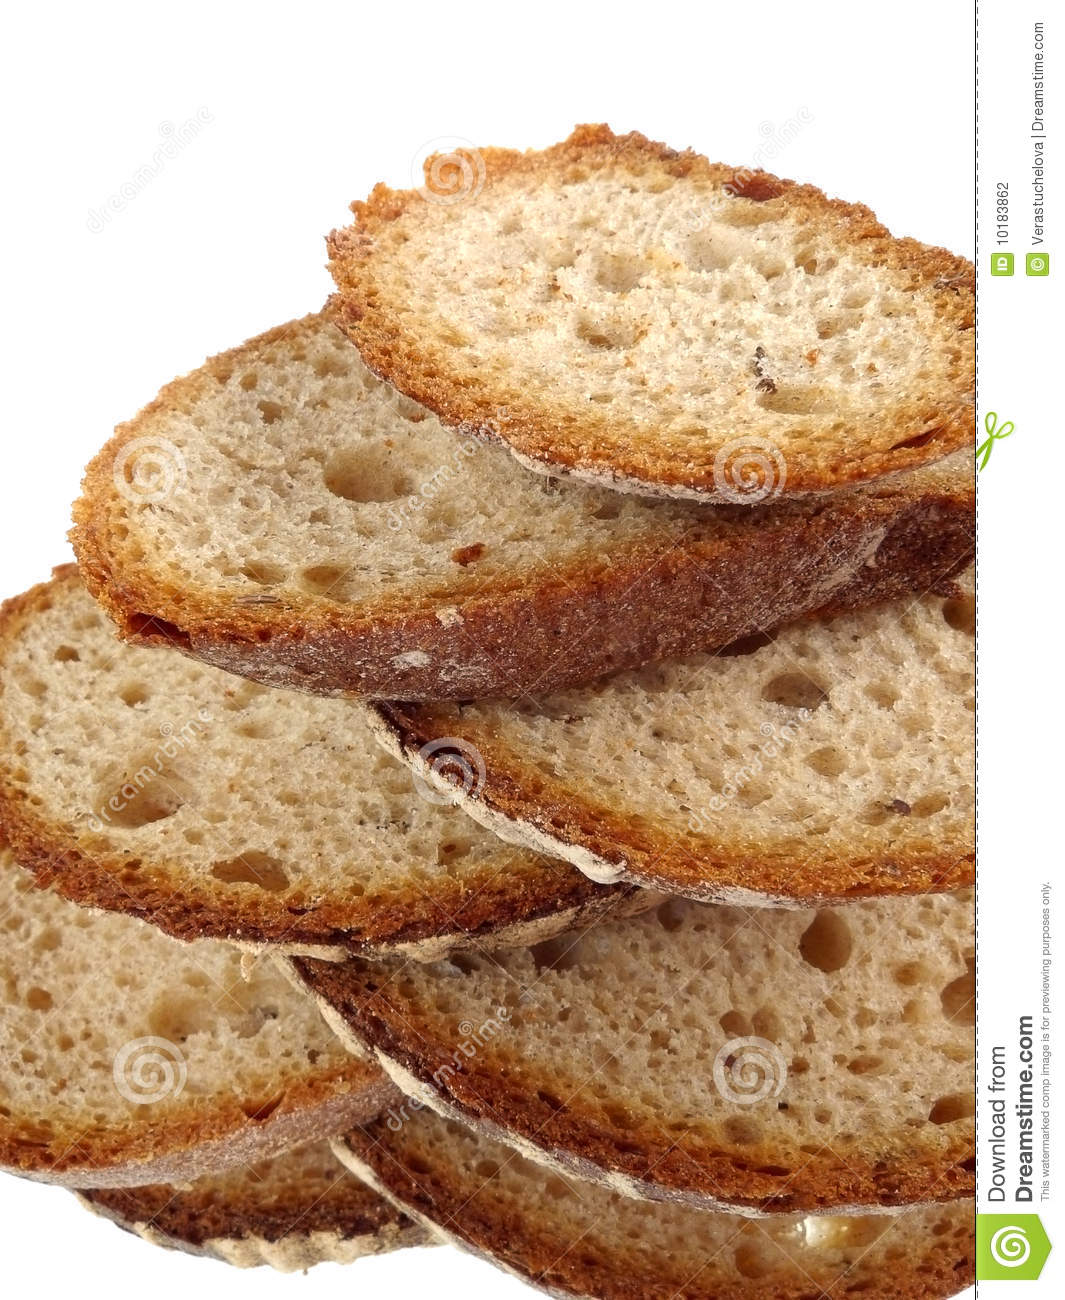 A sliced bread isolated on white